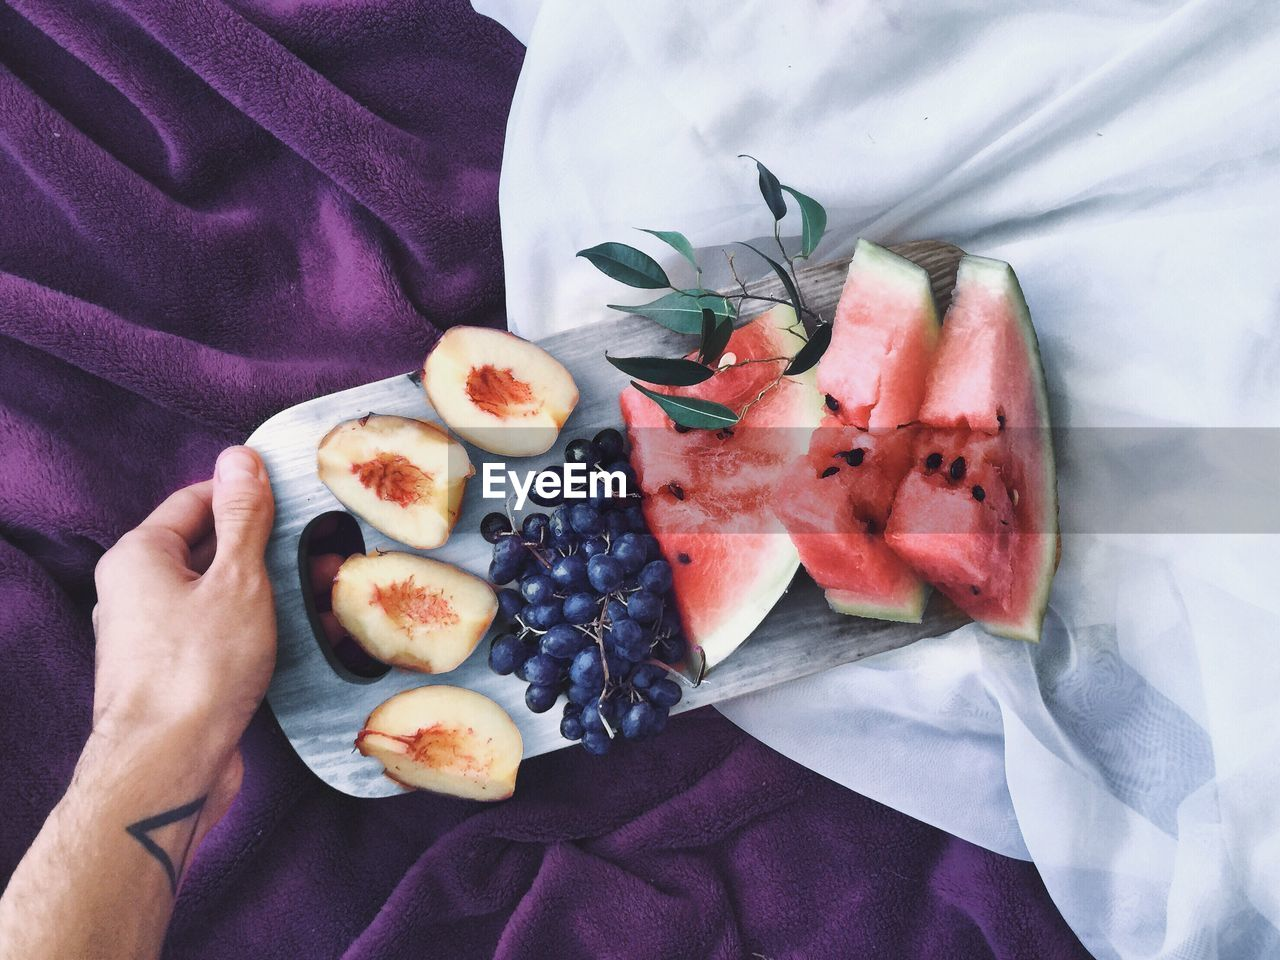 Close-up of hand holding fruit platter